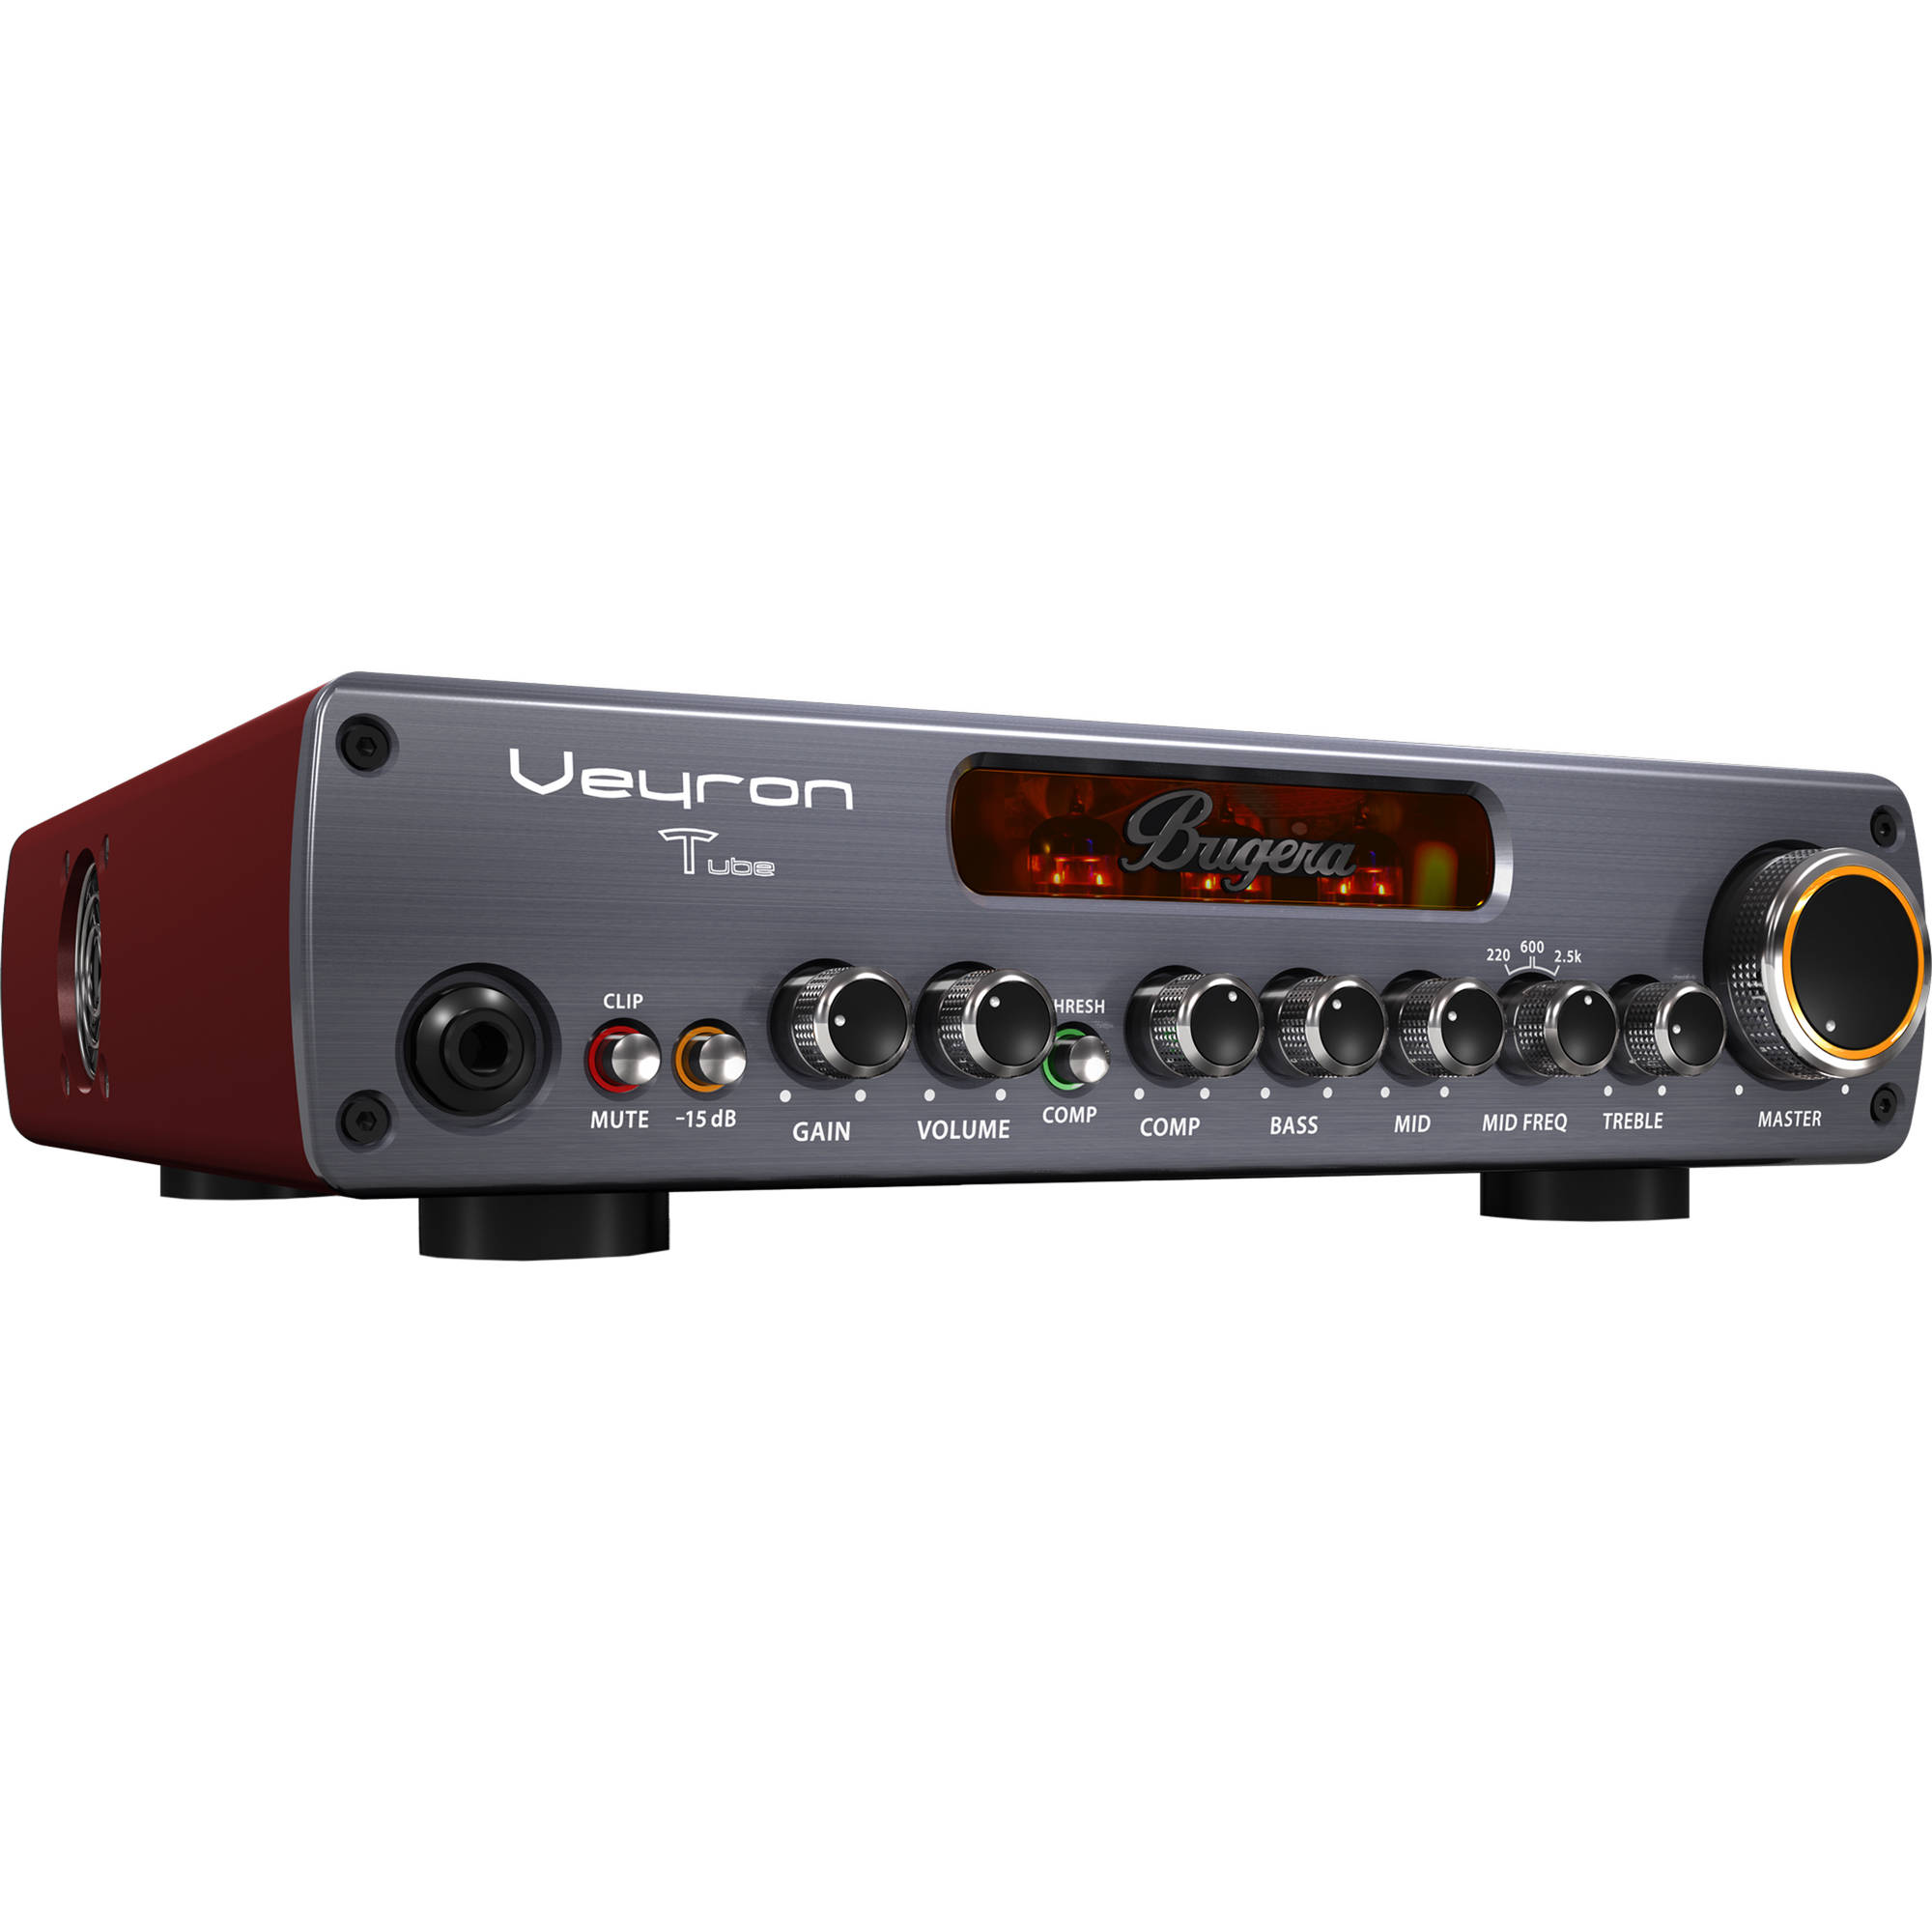 Bugera Veyron T Bv1001t 2000w Amplifier With Tube Preamp Passive Baxandall Tone Control 2 Band Equalizer Circuit Schematic